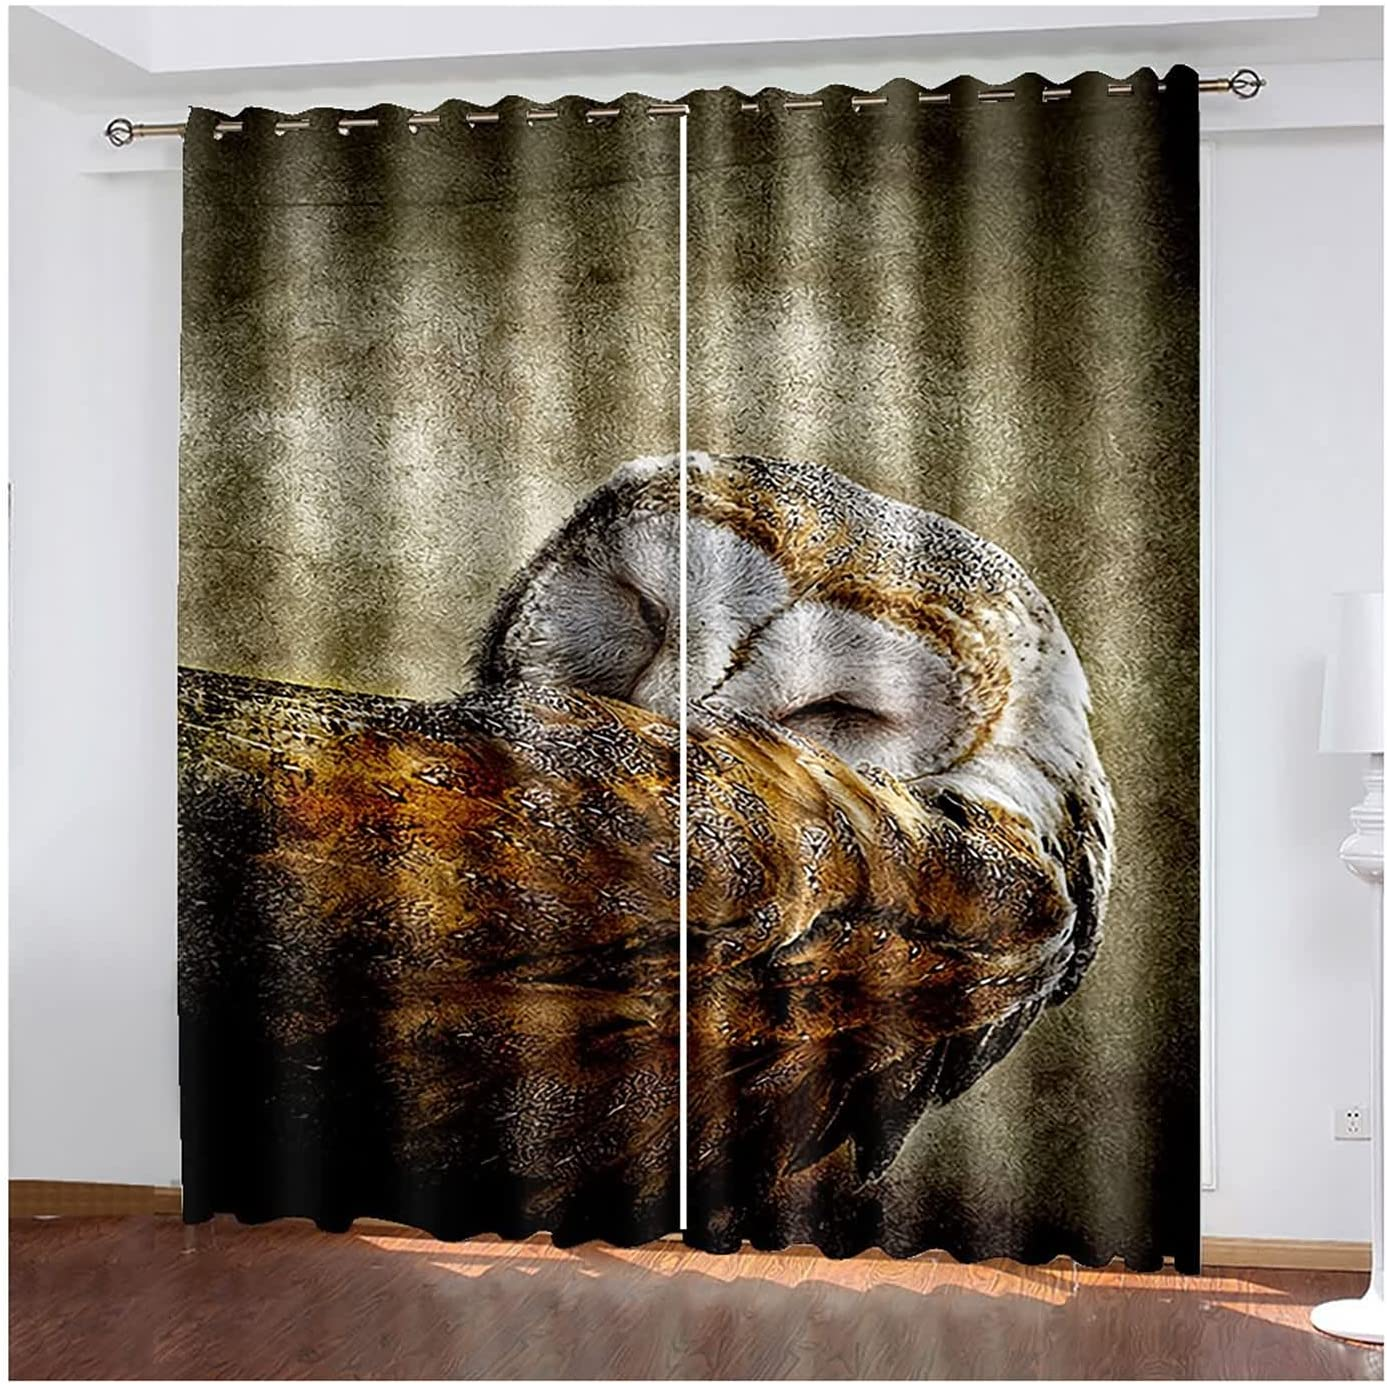 Blackout Drapes 2 Panel Curtain Ranking TOP6 Window Owl Eyelet Recommended Trea